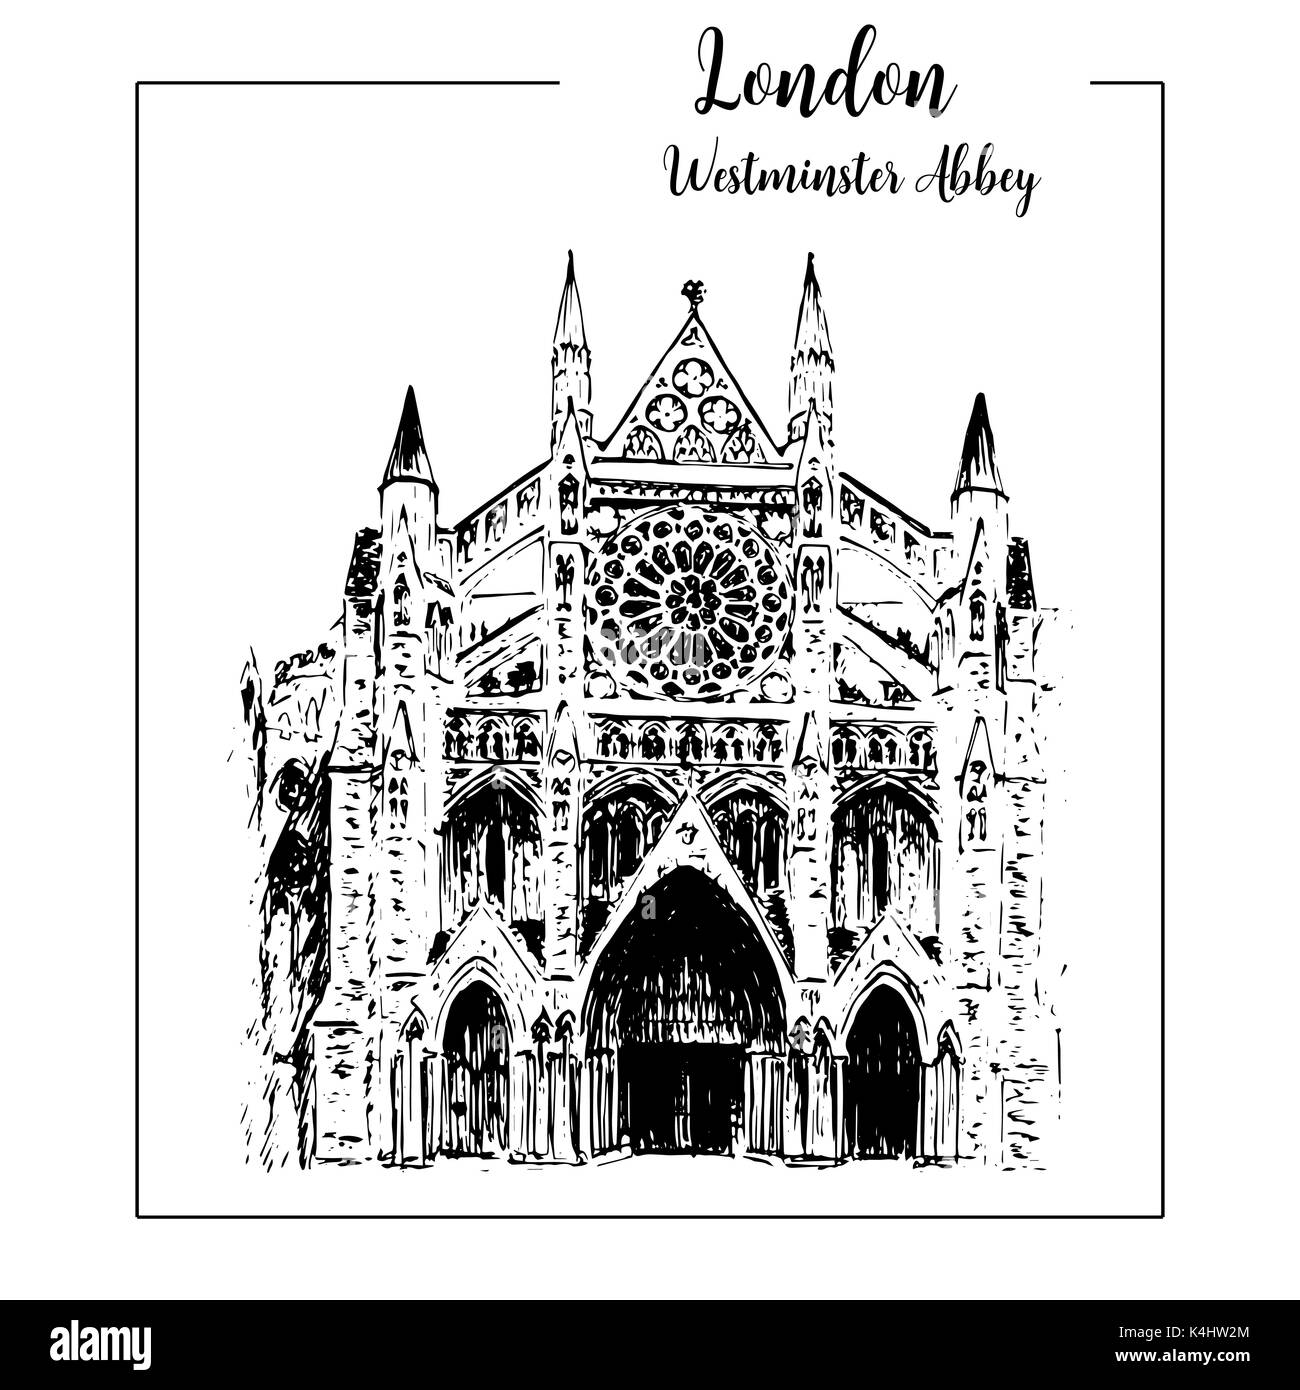 Westminster abbey, London architectural symbol. Beautiful hand drawn vector sketch illustration - Stock Image